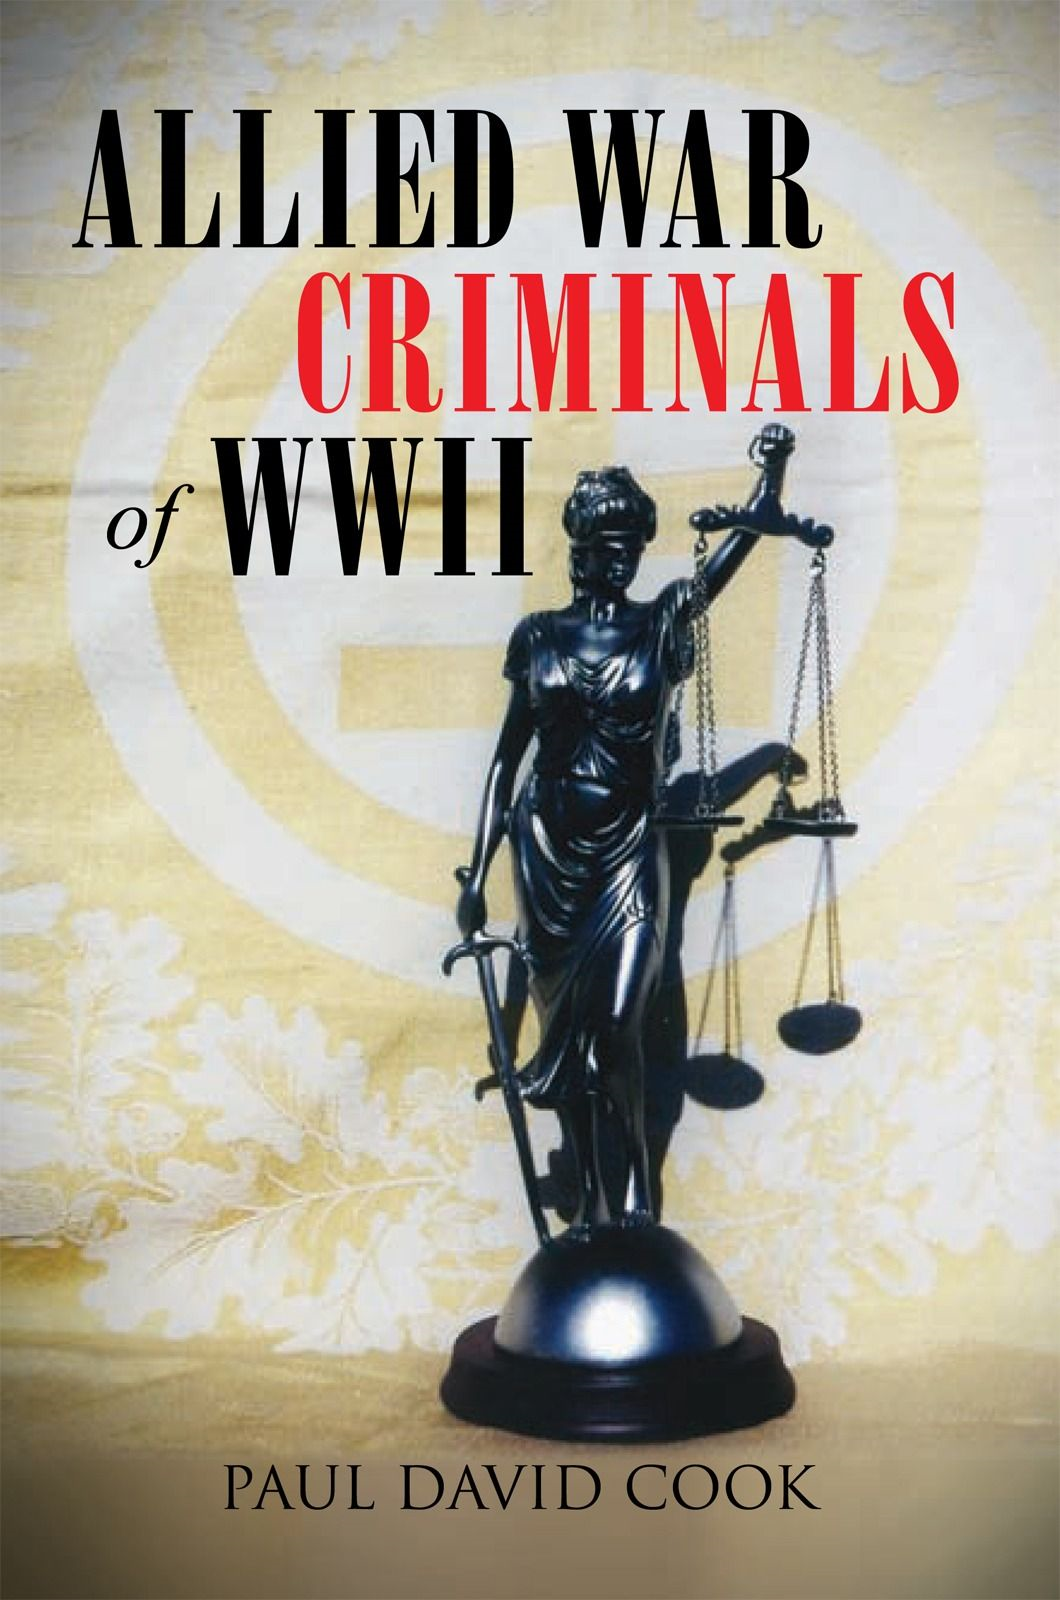 download Allied War Criminals Of Wwii book